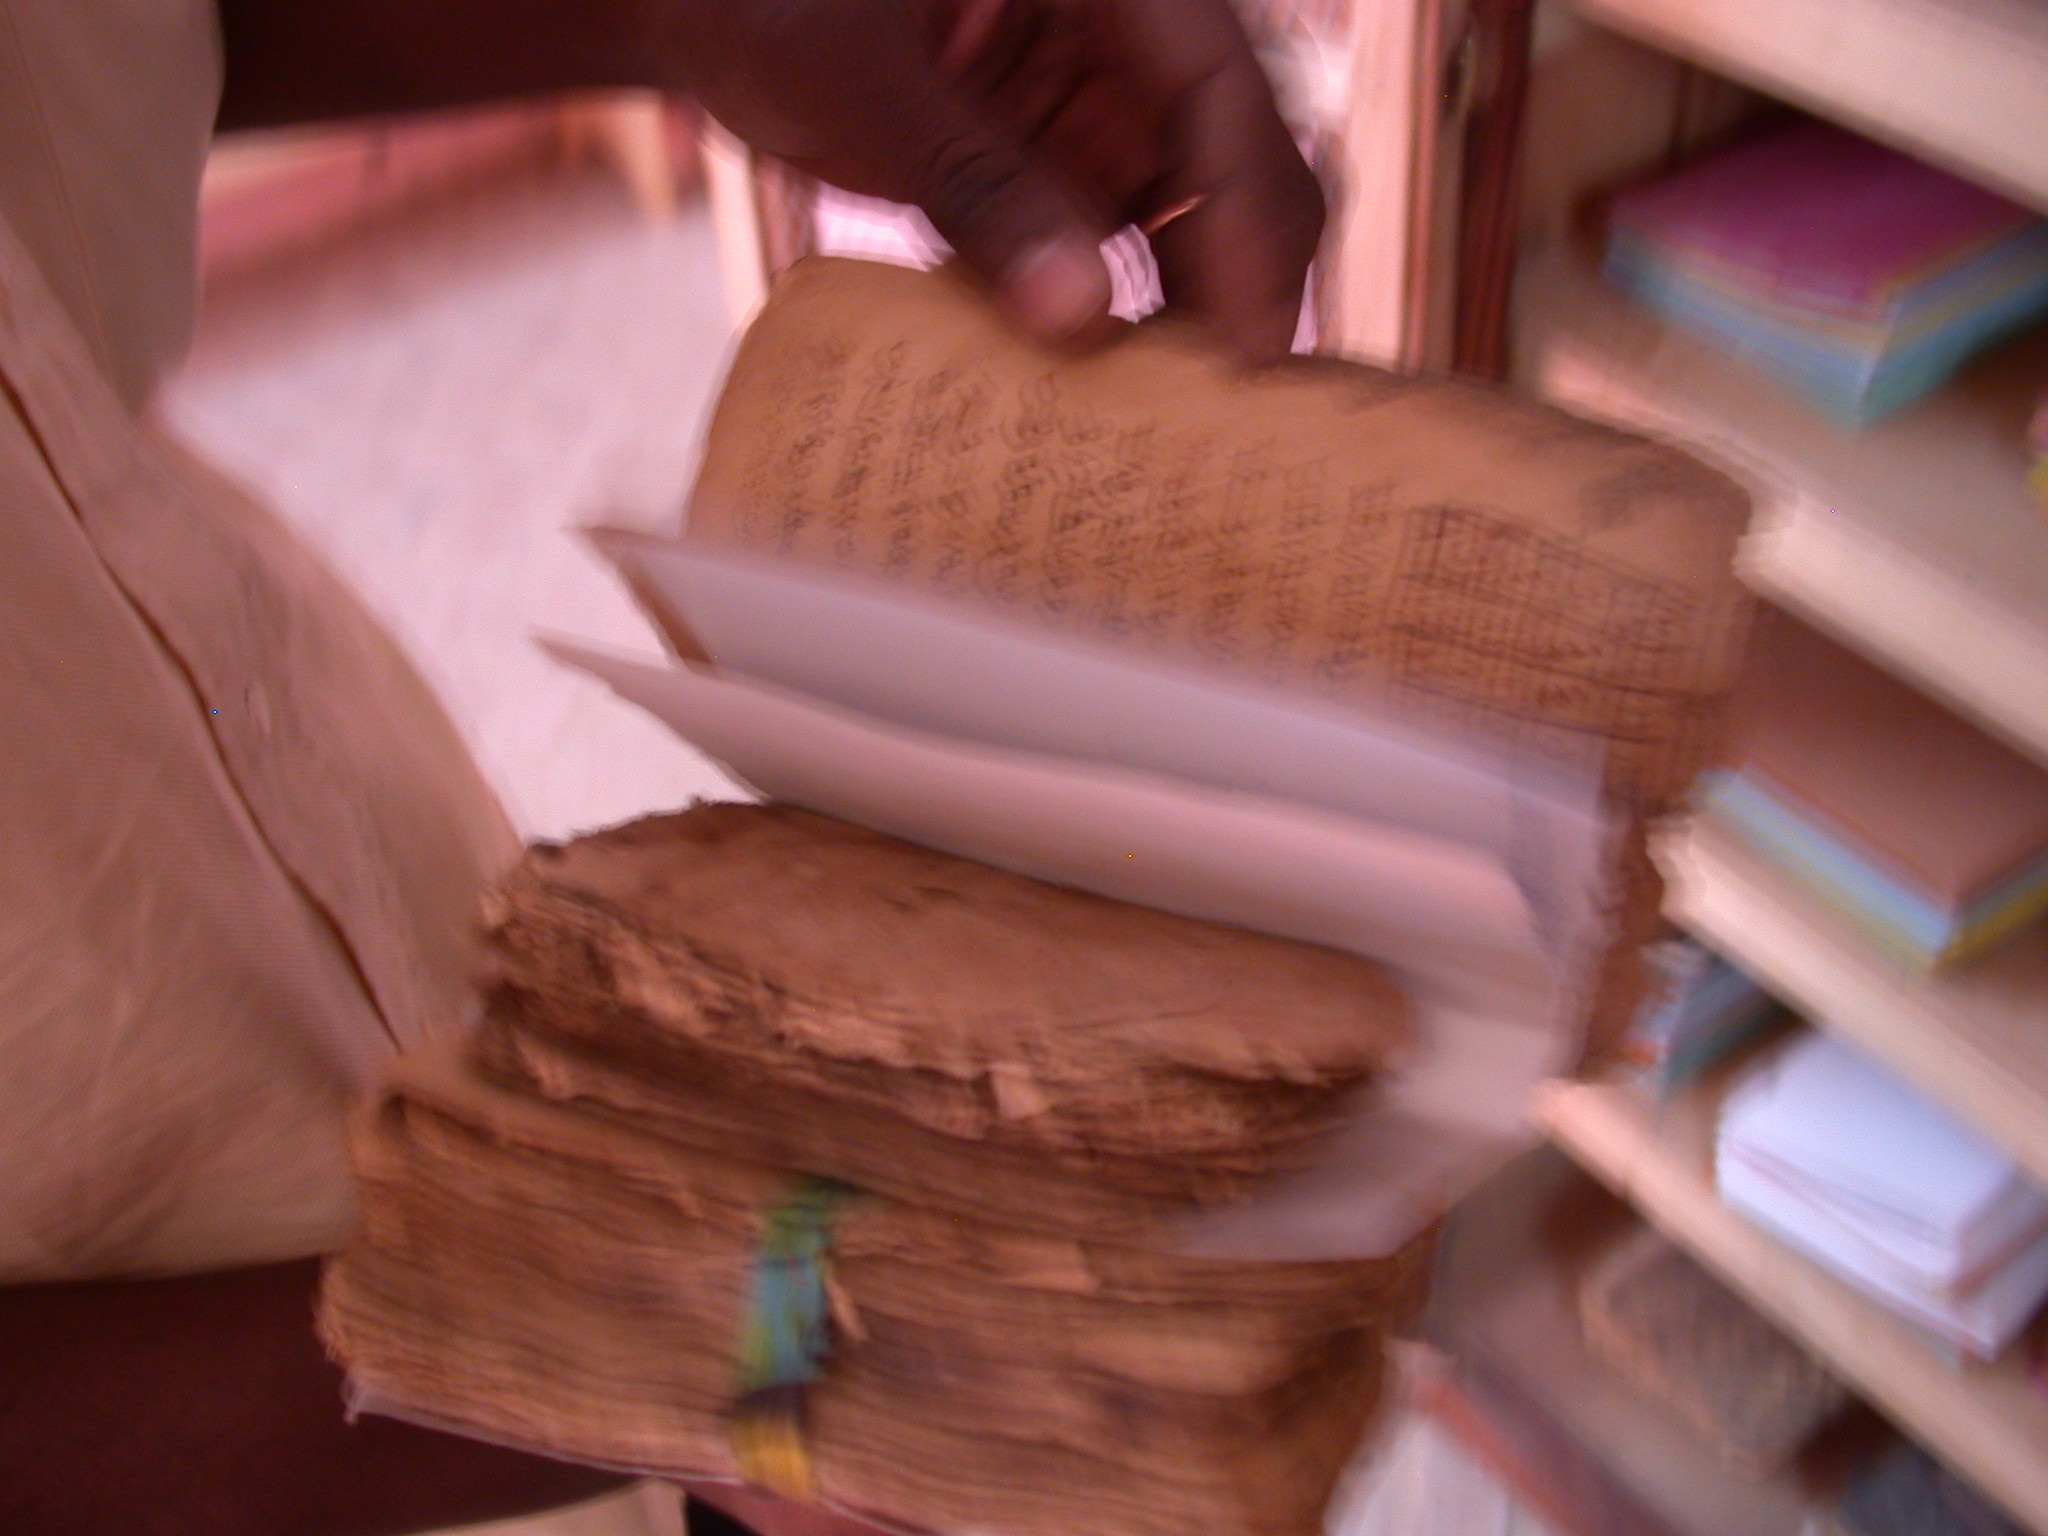 Leafing Through Old Manuscript, Manuscript Library, Timbuktu, Mali